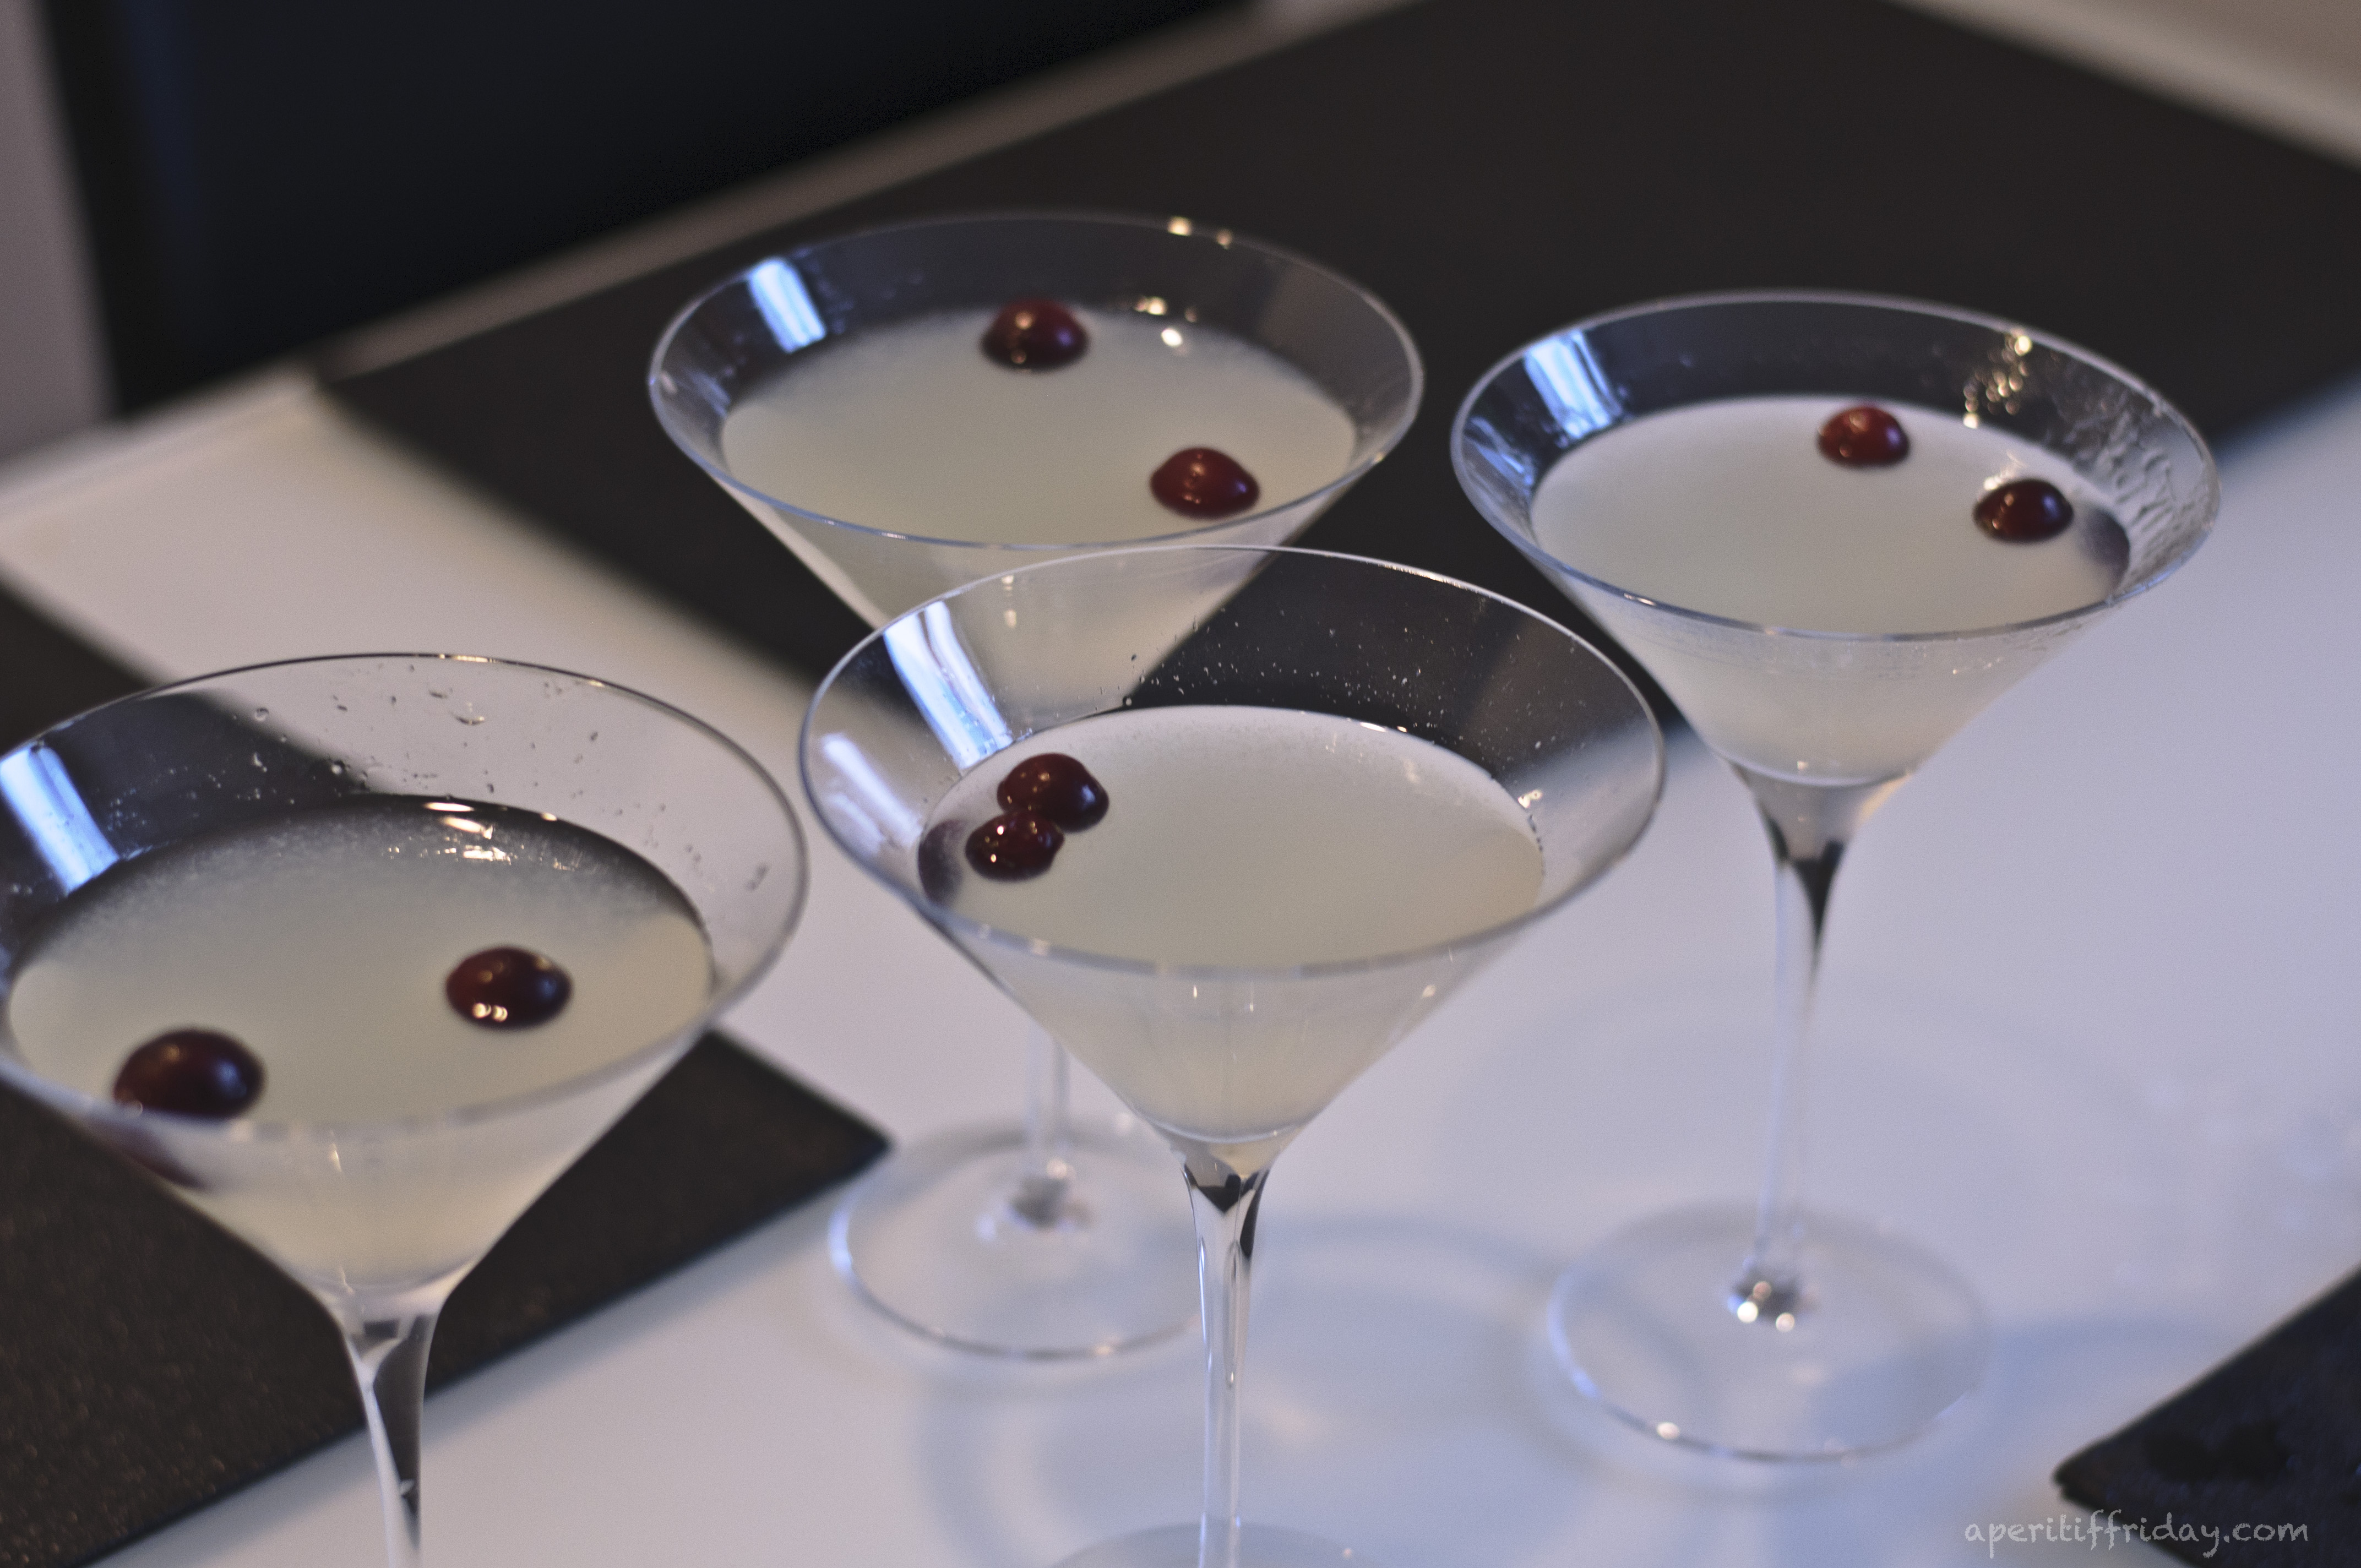 Winter White Cosmo (inspired by Bonefish Grill) - Apéritif Friday